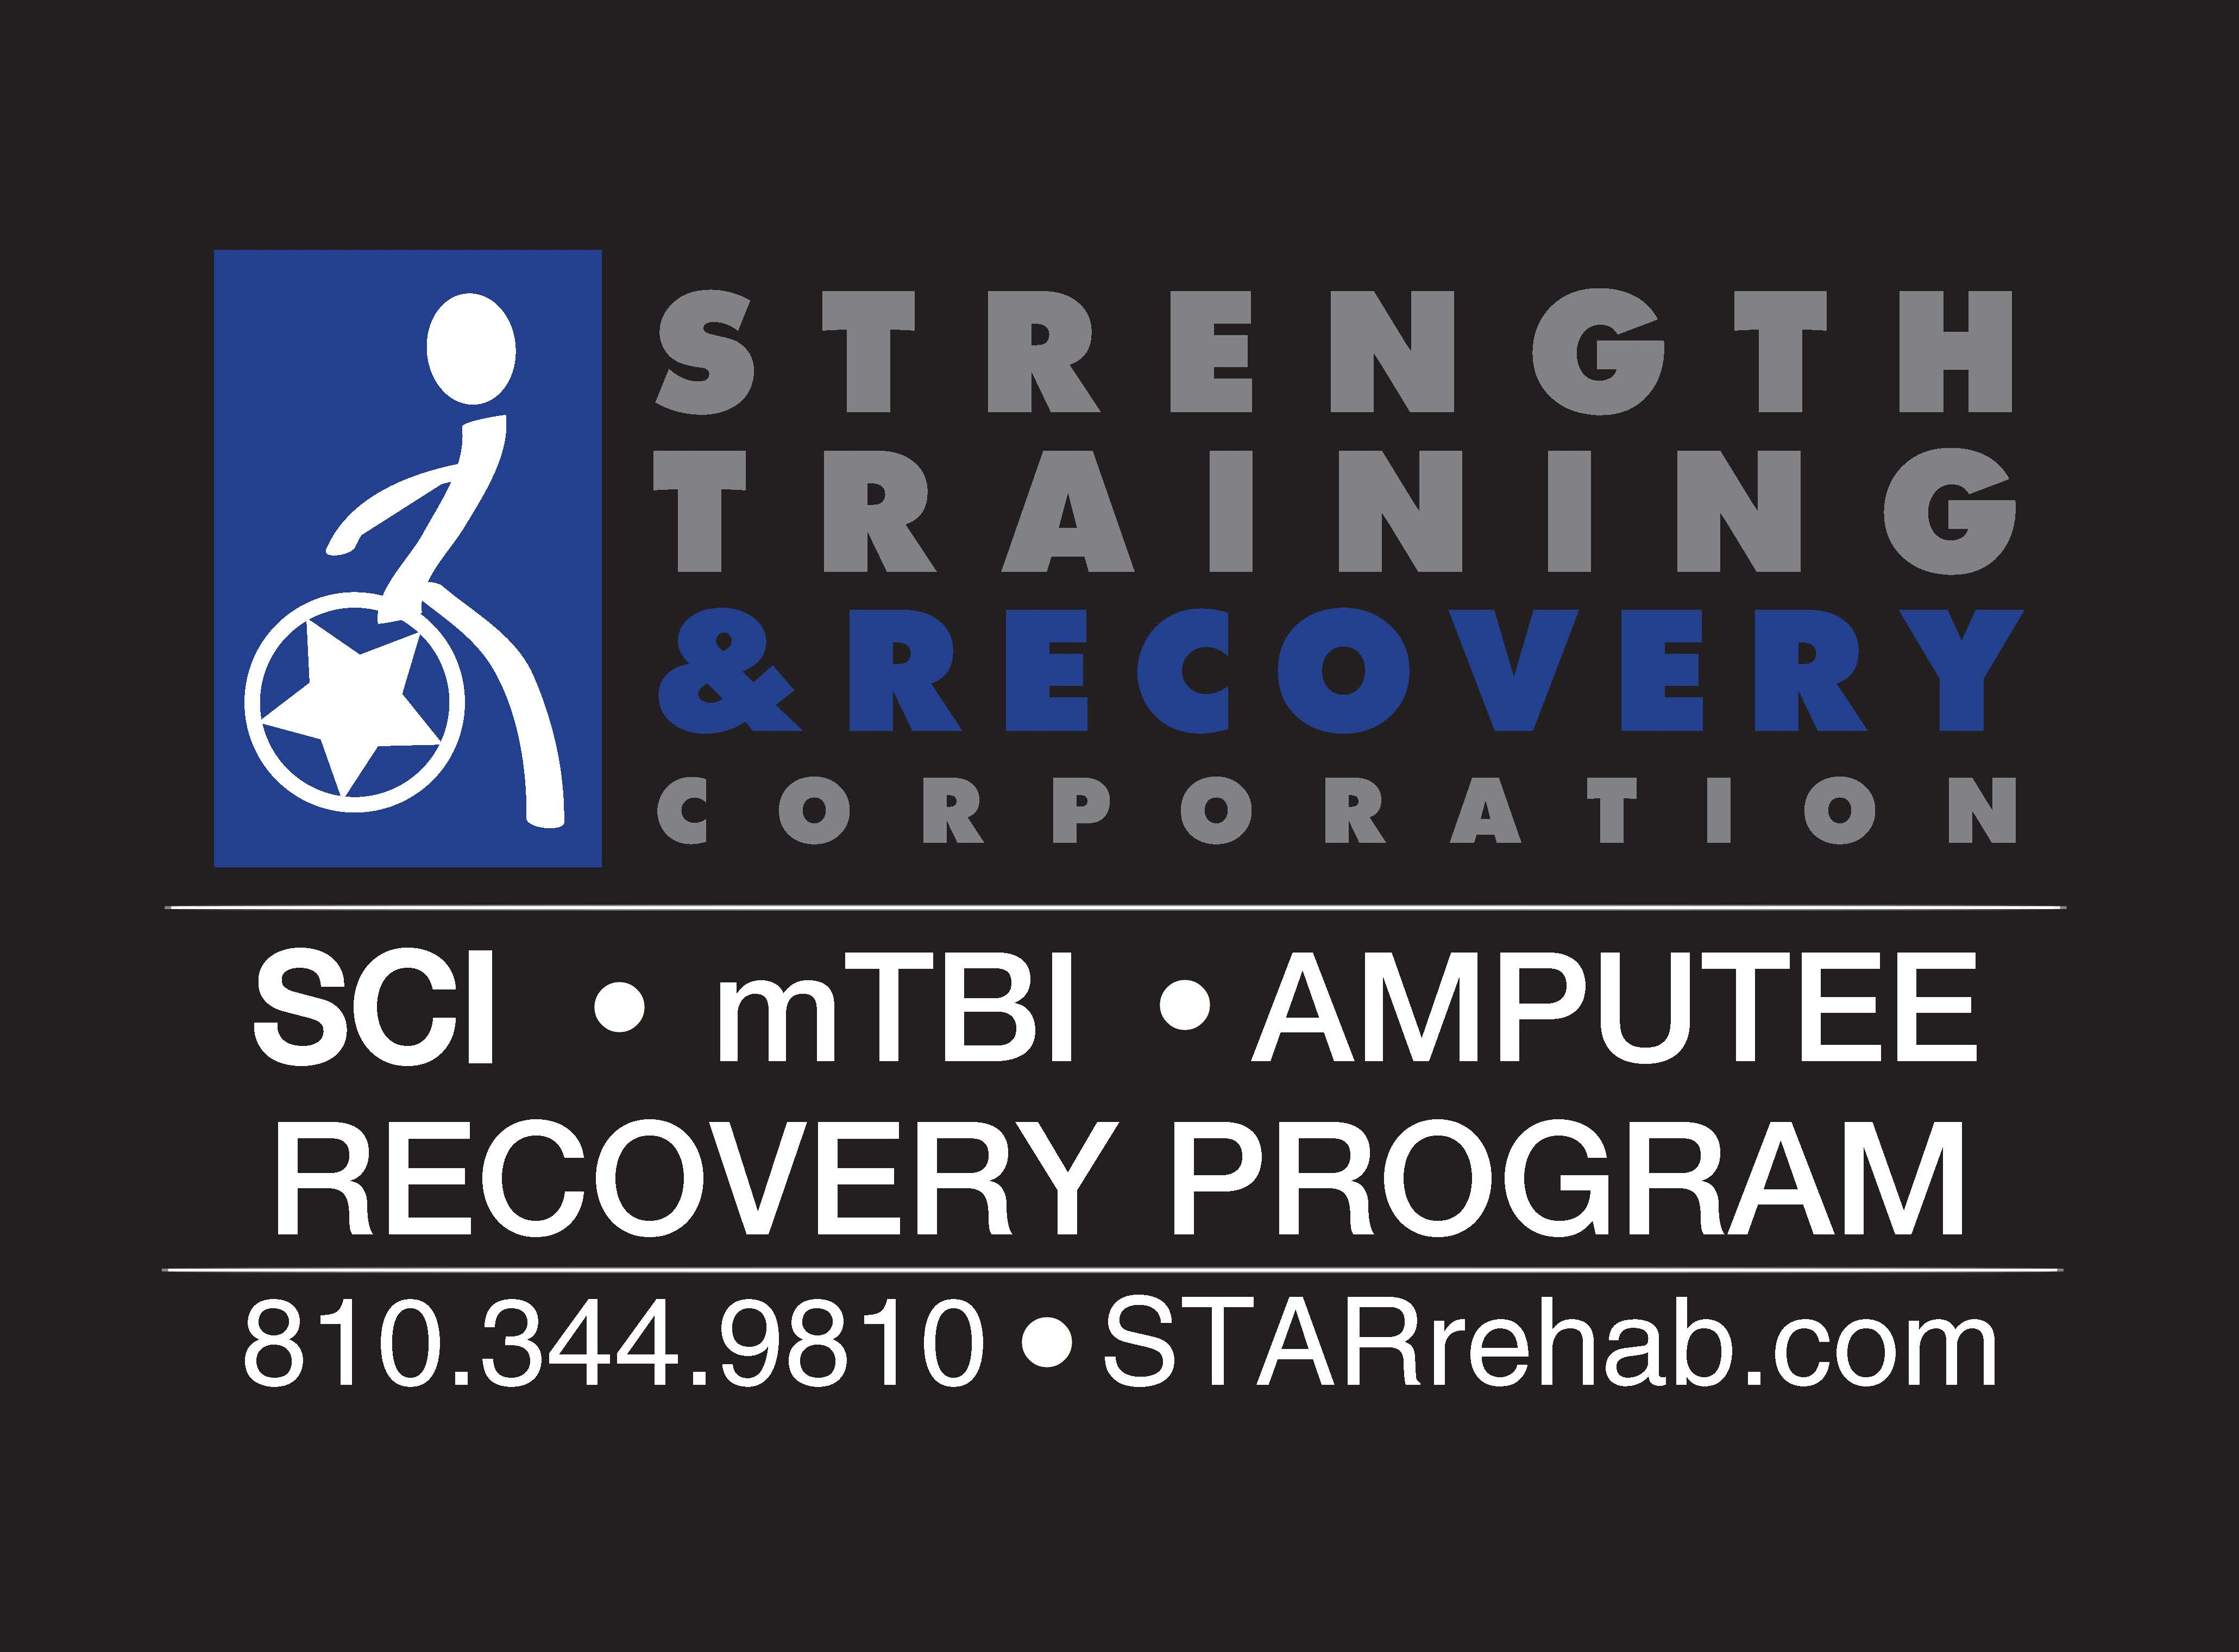 Strength Training & Recovery Corp.